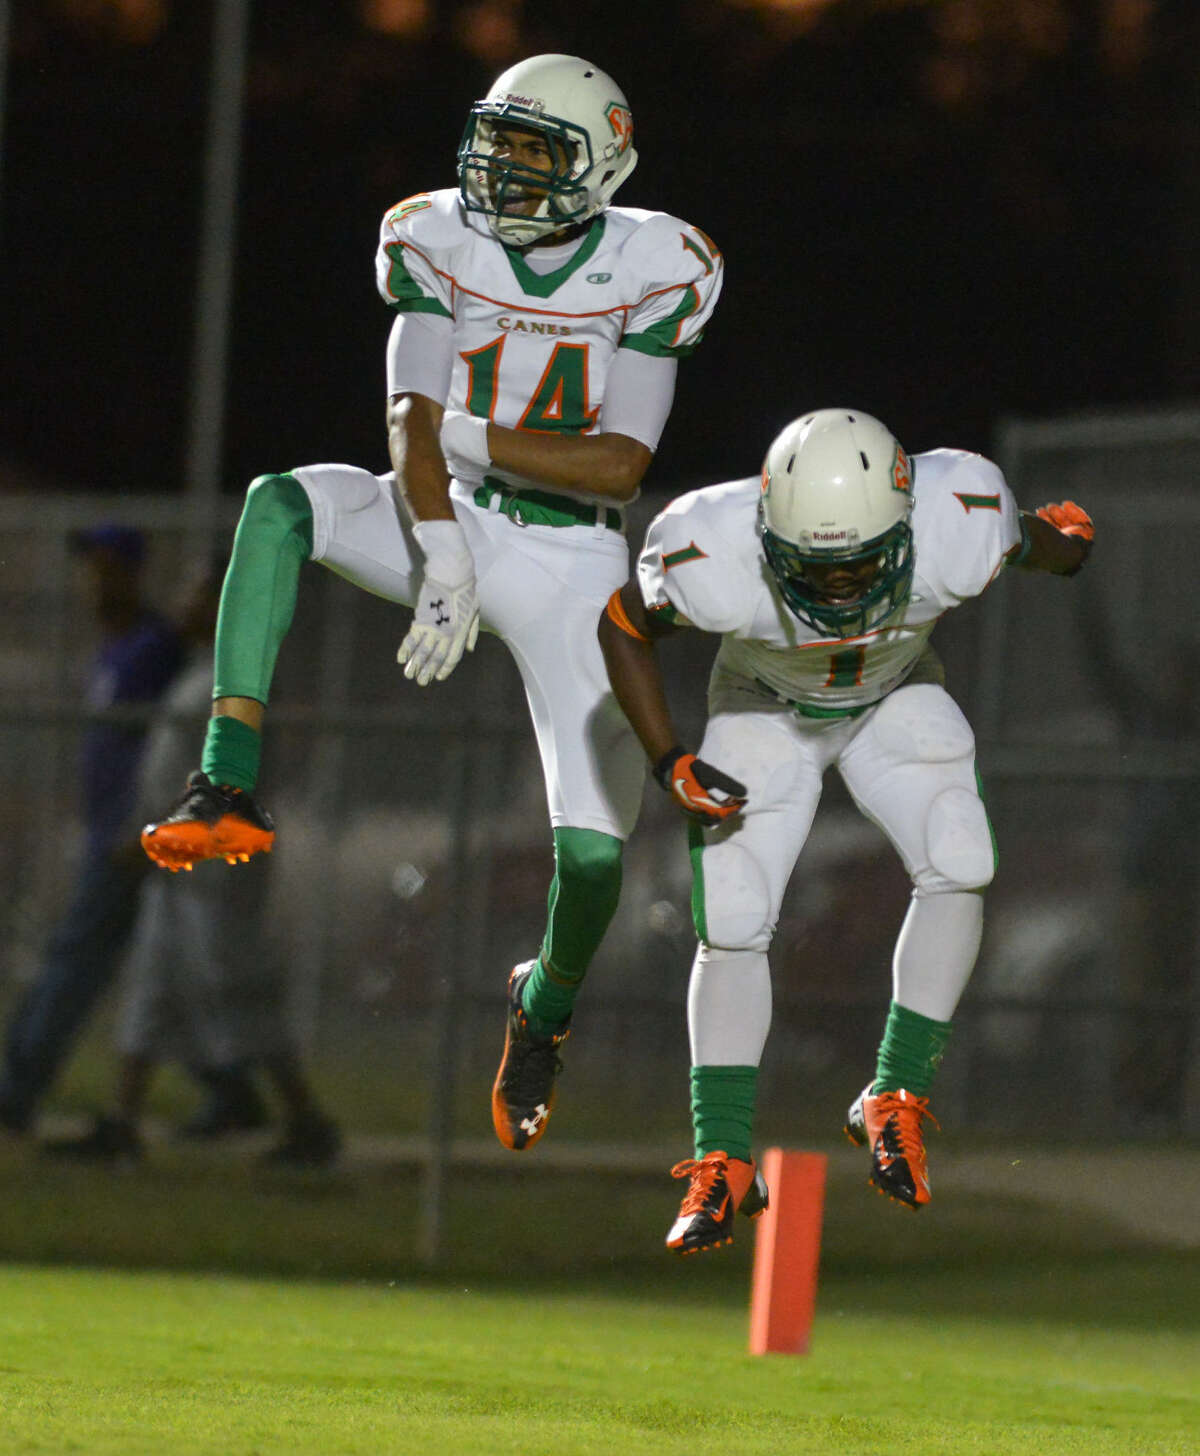 Sam Houston's Jawon Anderson (14) jumps for joy after scoring a touchdown with teammate Travon Vaughns during their game against Brackenridge Friday night.